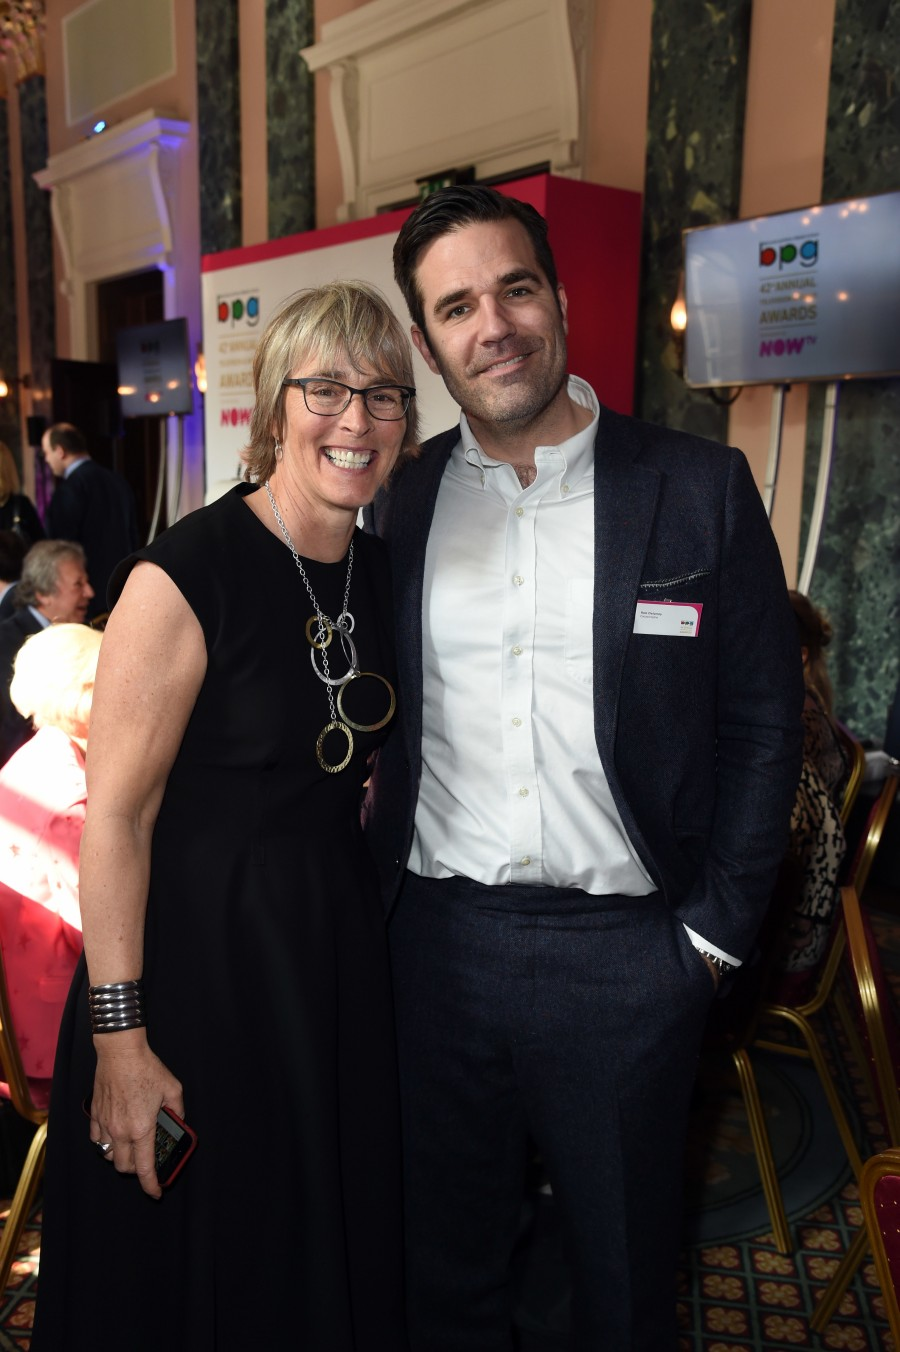 BPG Awards March 2016. Kate with Rob Delaney, writer and star of Catastrophe on Channel 4 and Amazon Prime Video